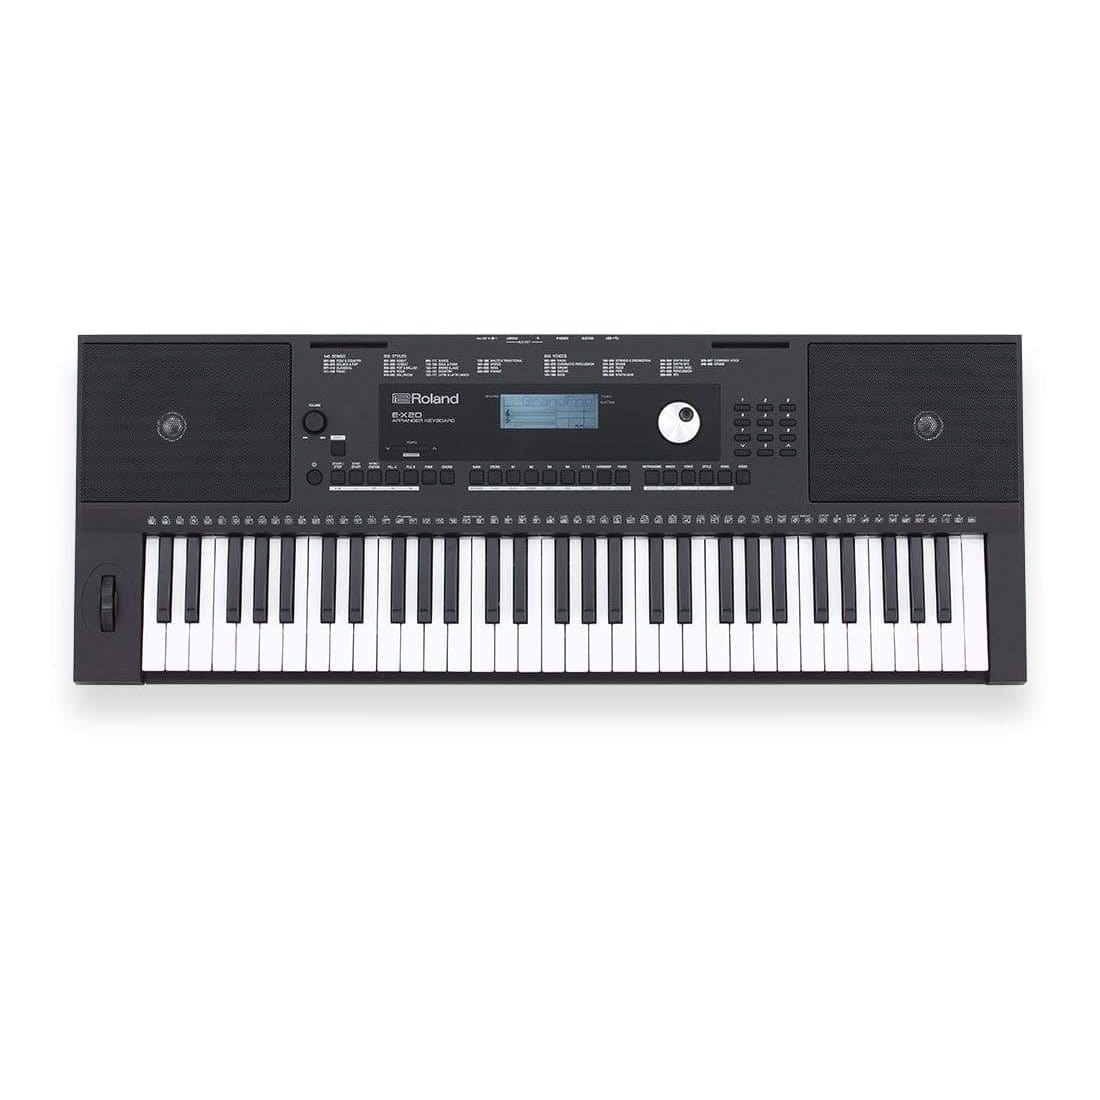 Roland E-X20 61-Key Portable Arranger Keyboard